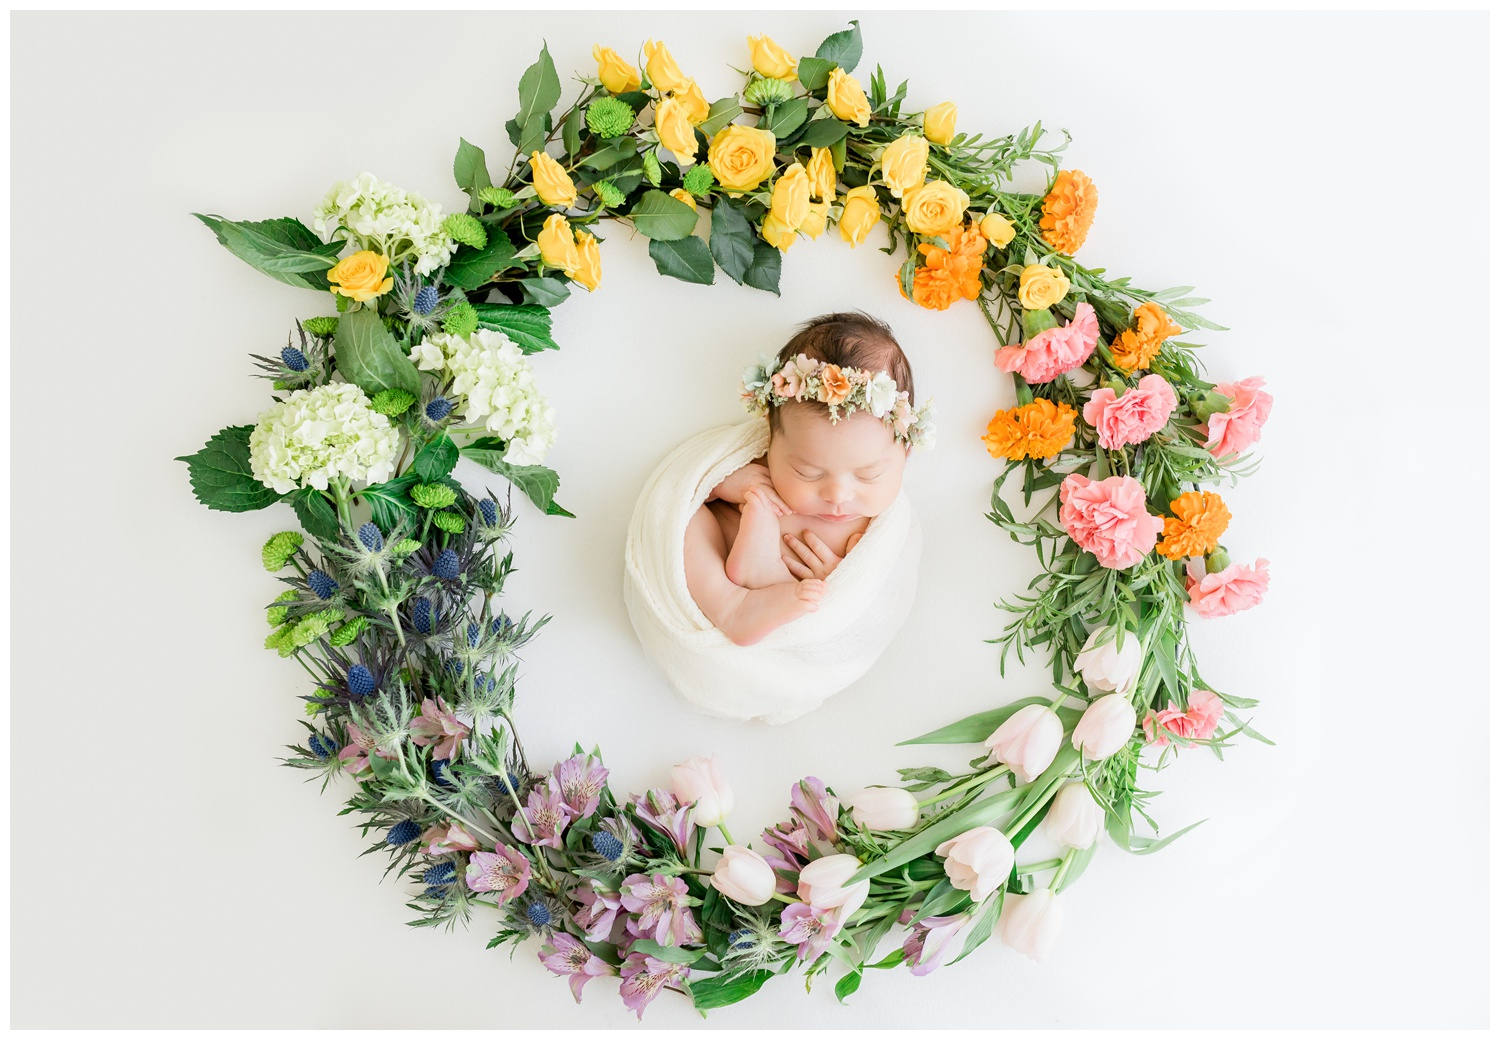 Beautiful floral wreath created by Valerie of Bloom Floral Artistry